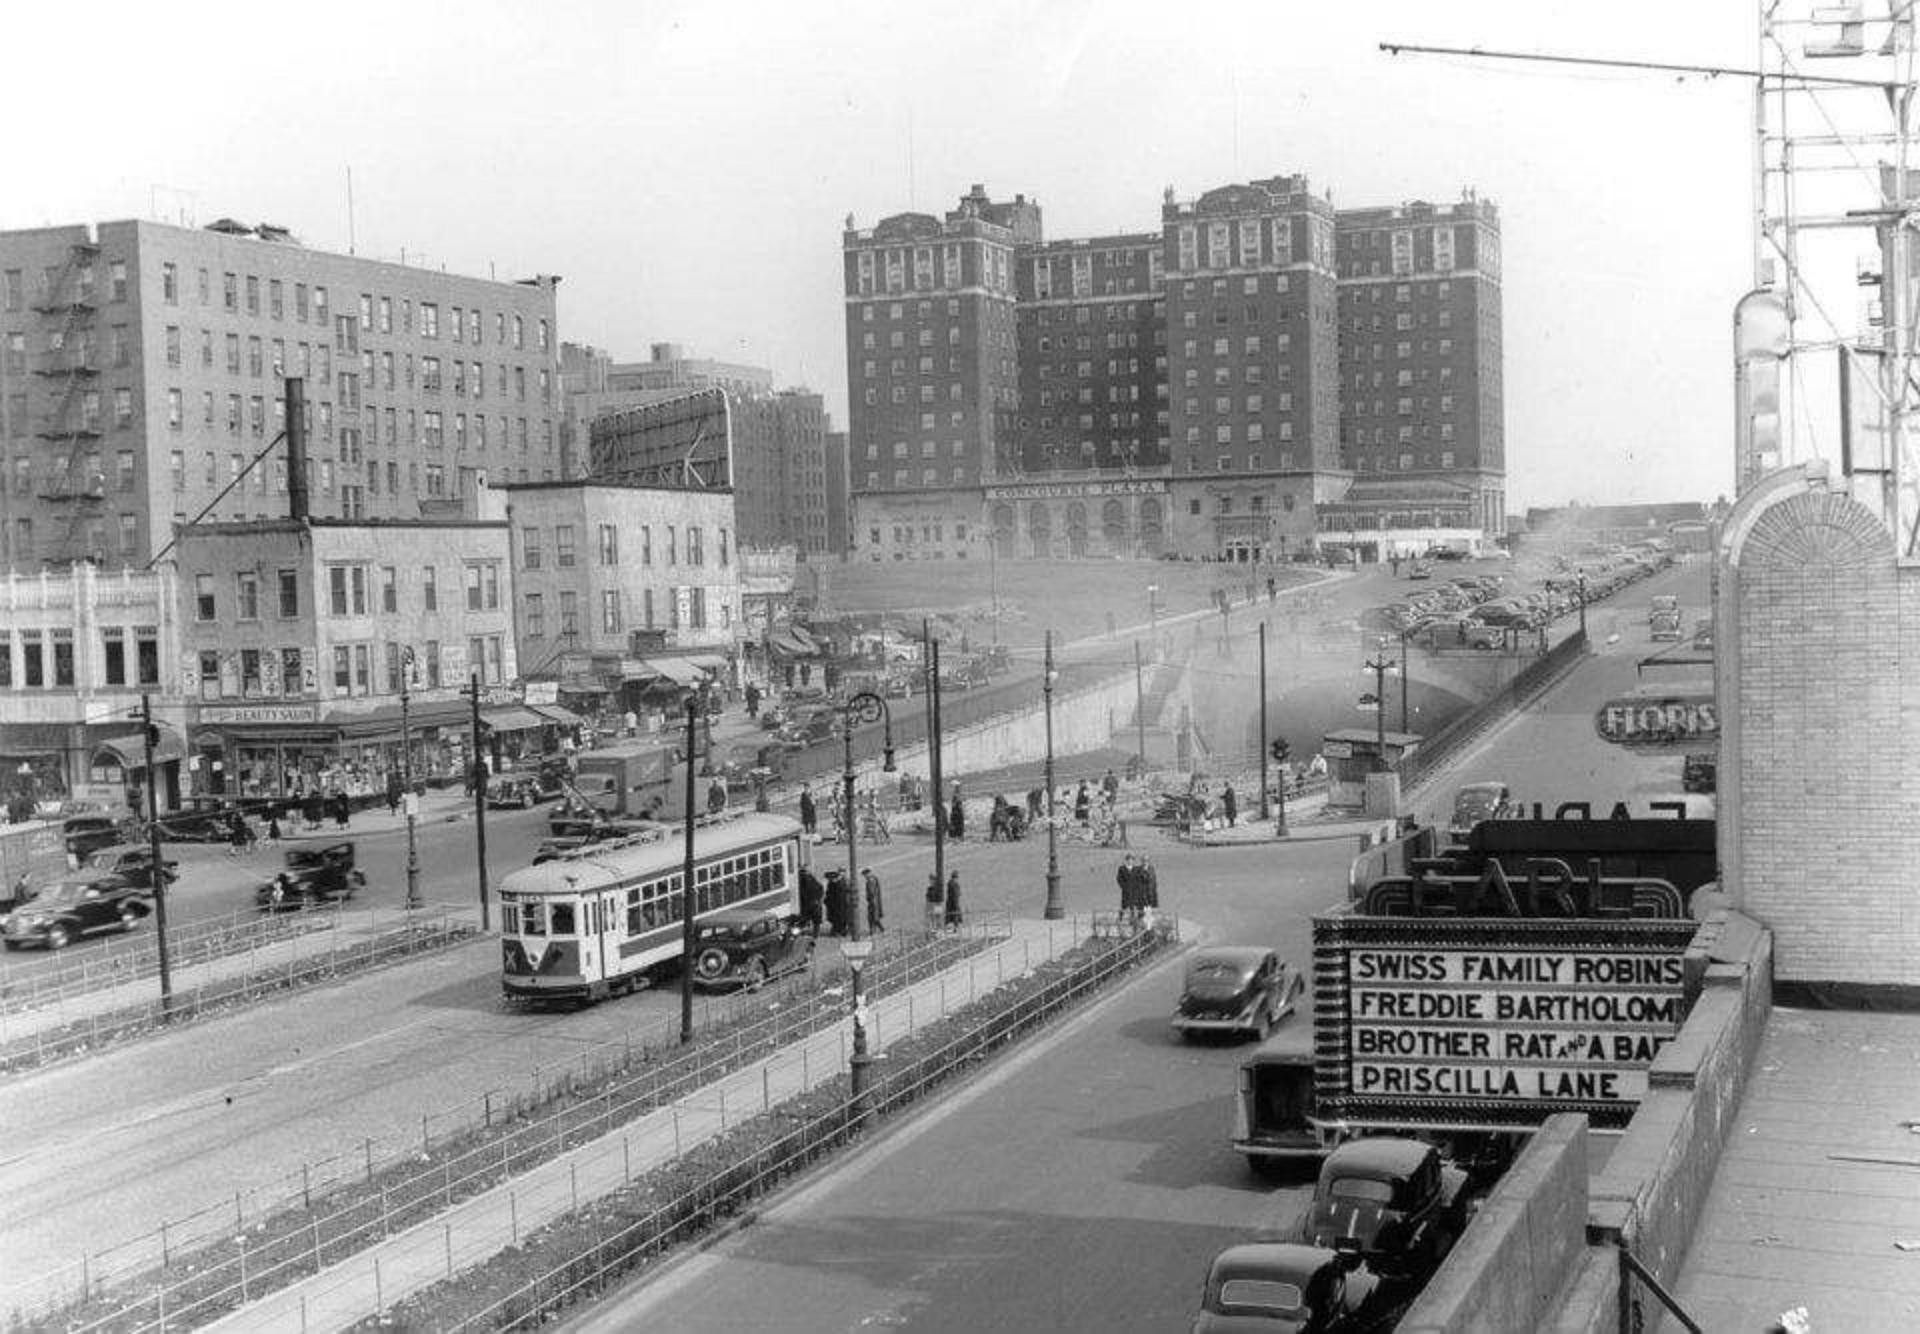 161st Street facing Grand Concourse 1930's.